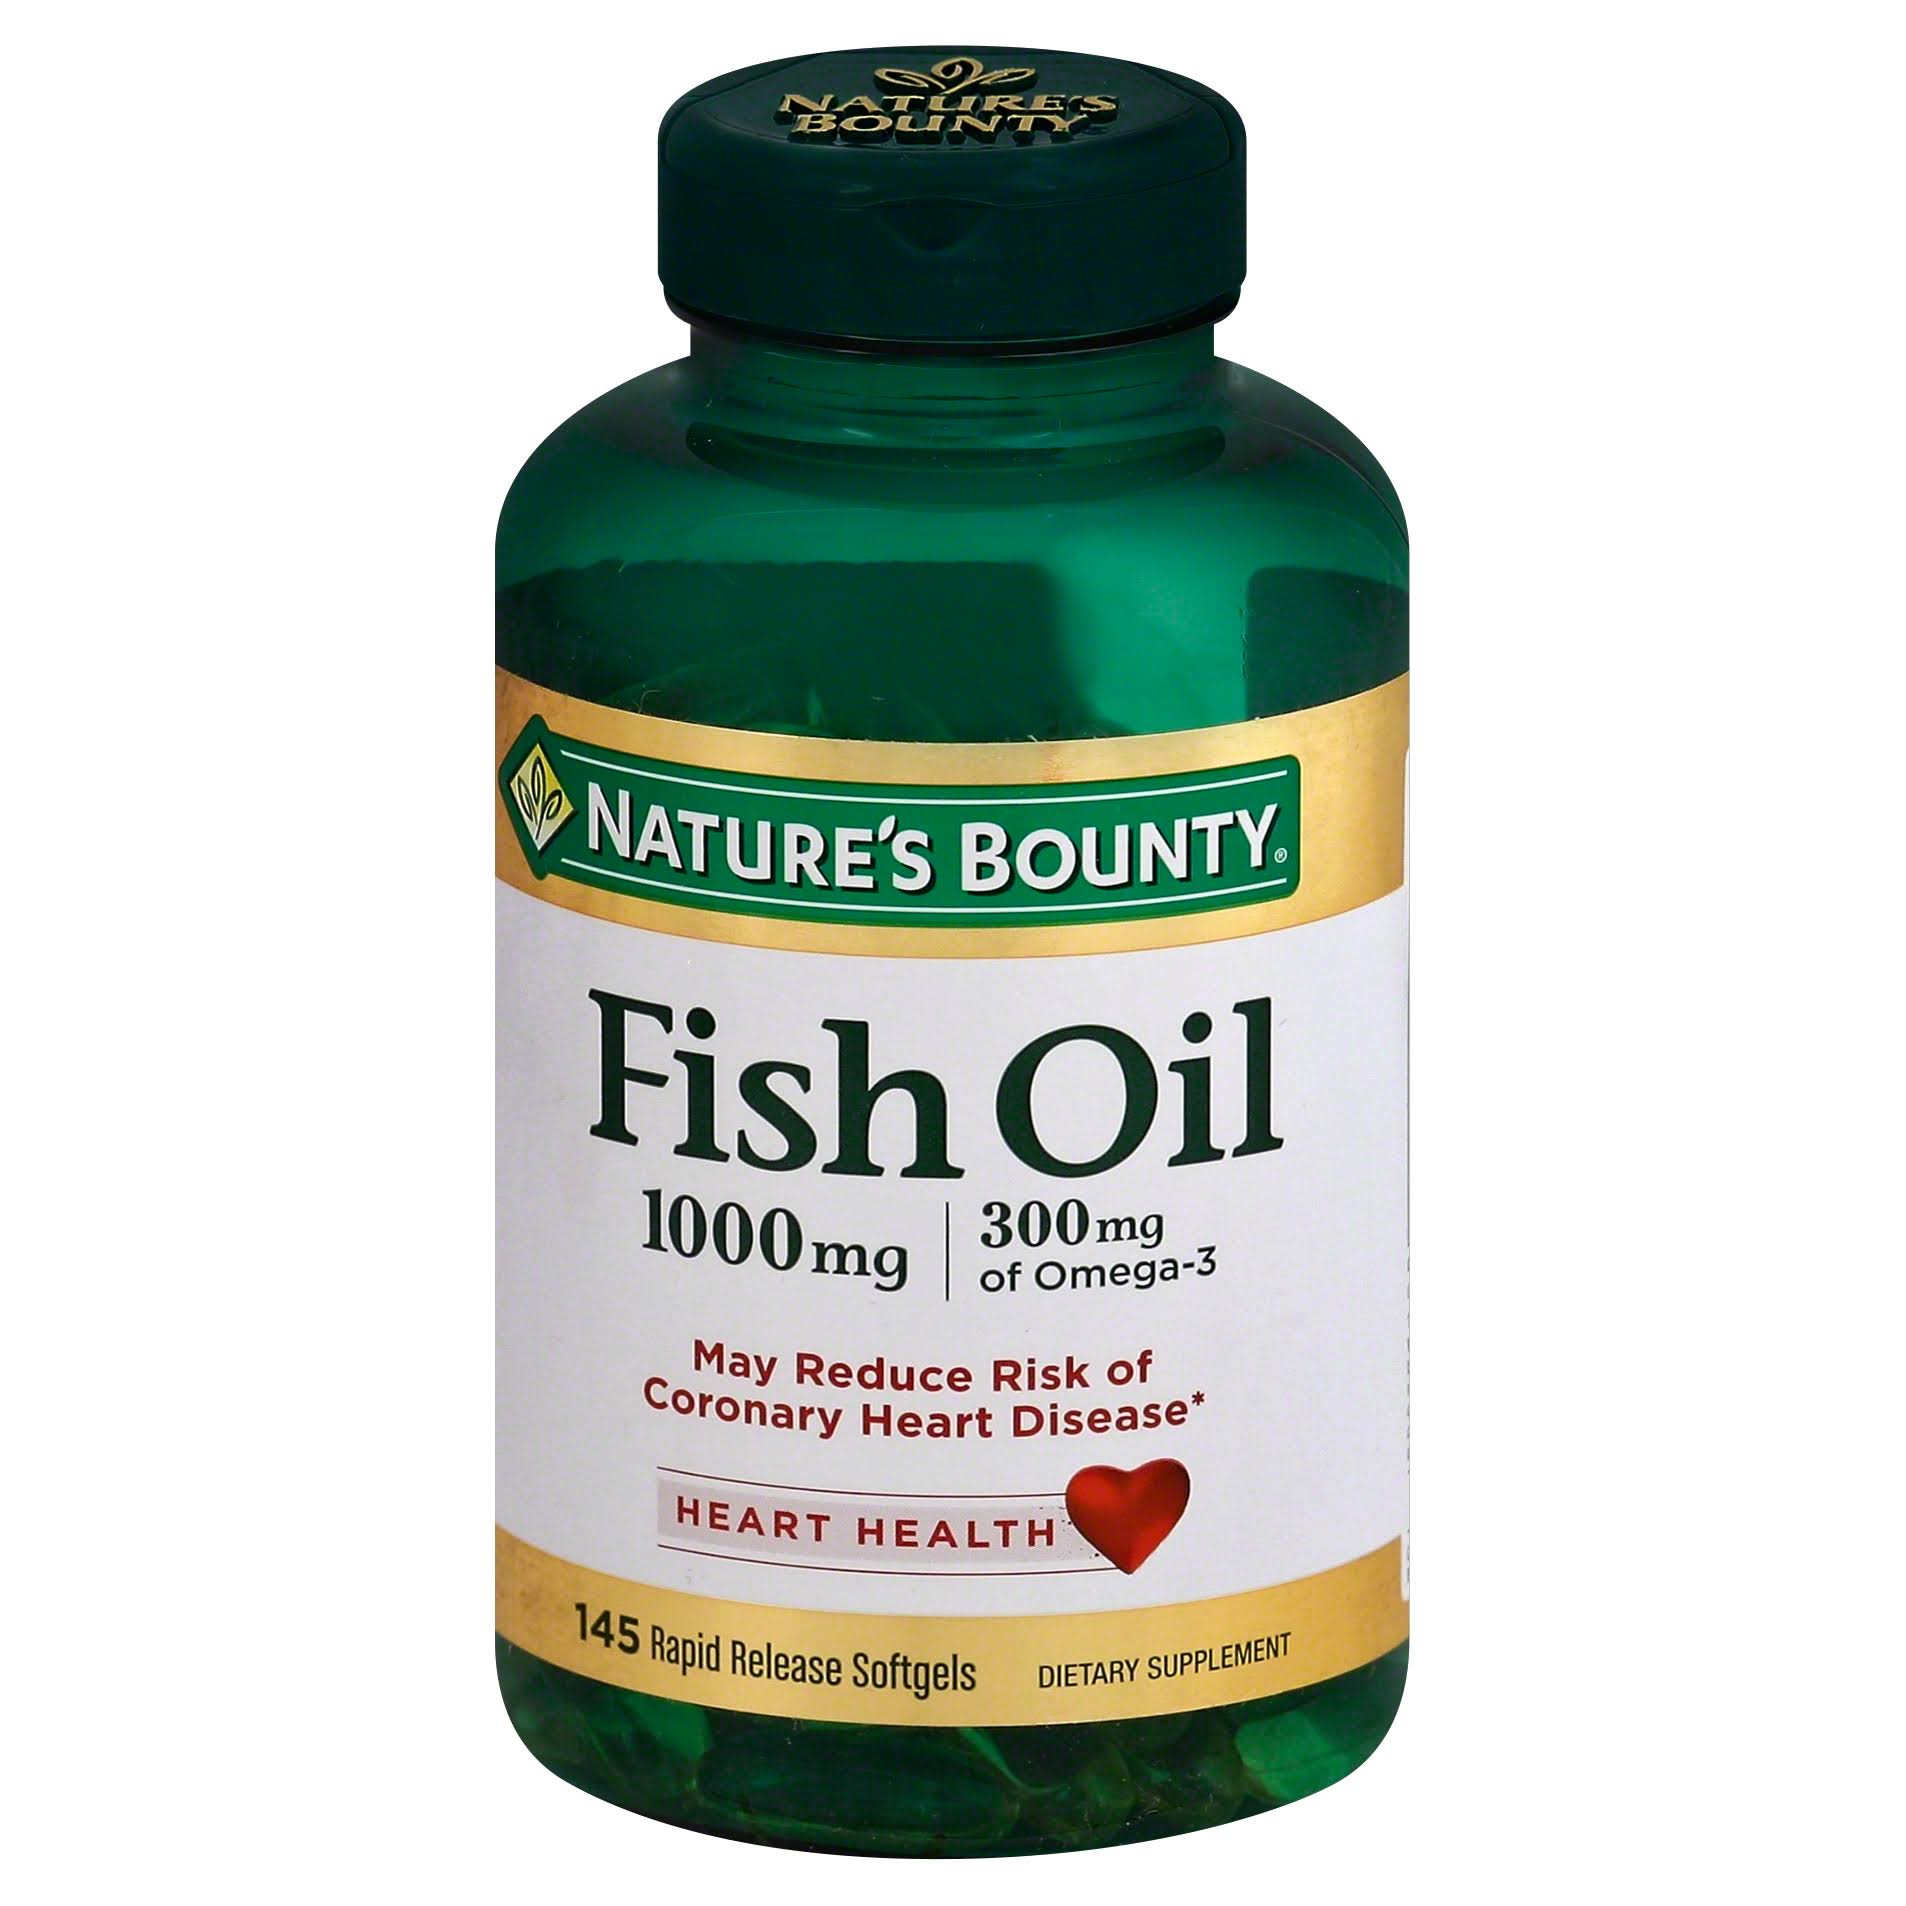 Nature's Bounty Fish Oil Dietary Supplement - 145 Rapid Release Softgels